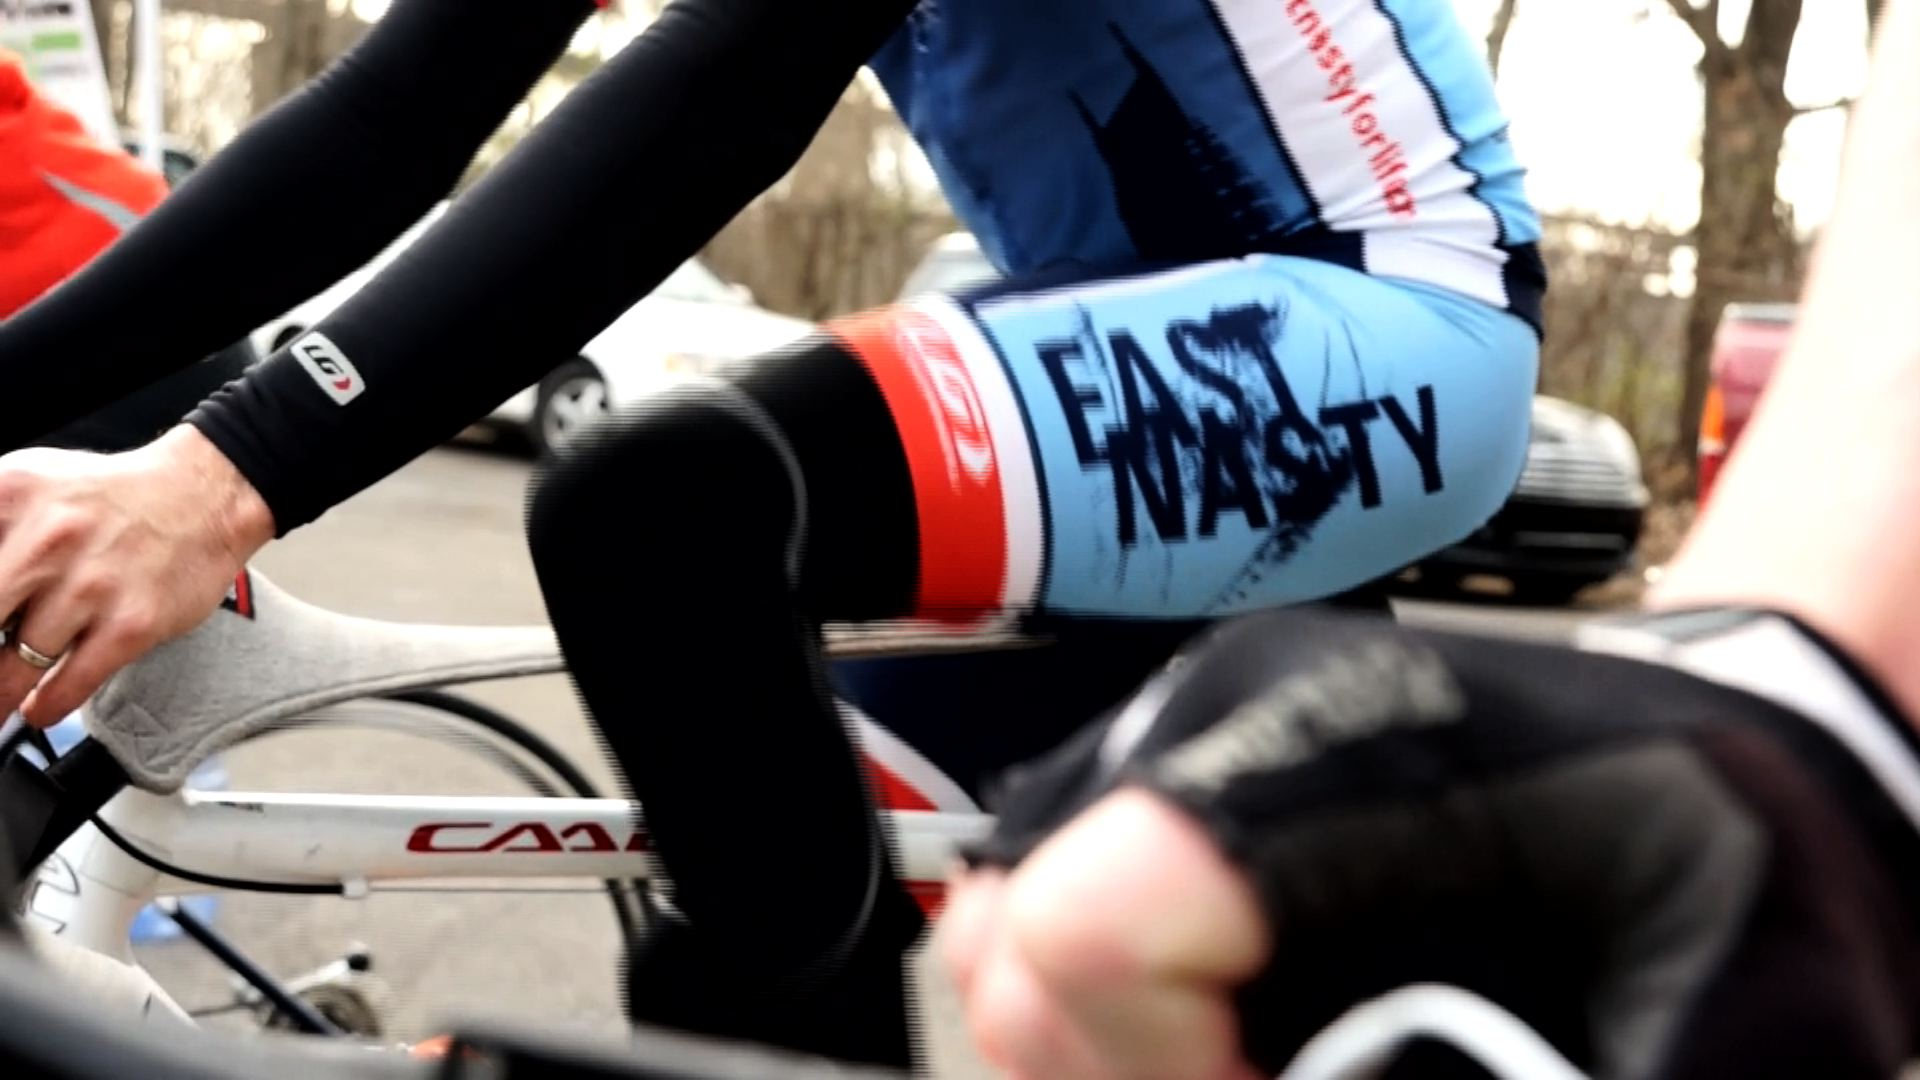 Jim's East Nasty gear